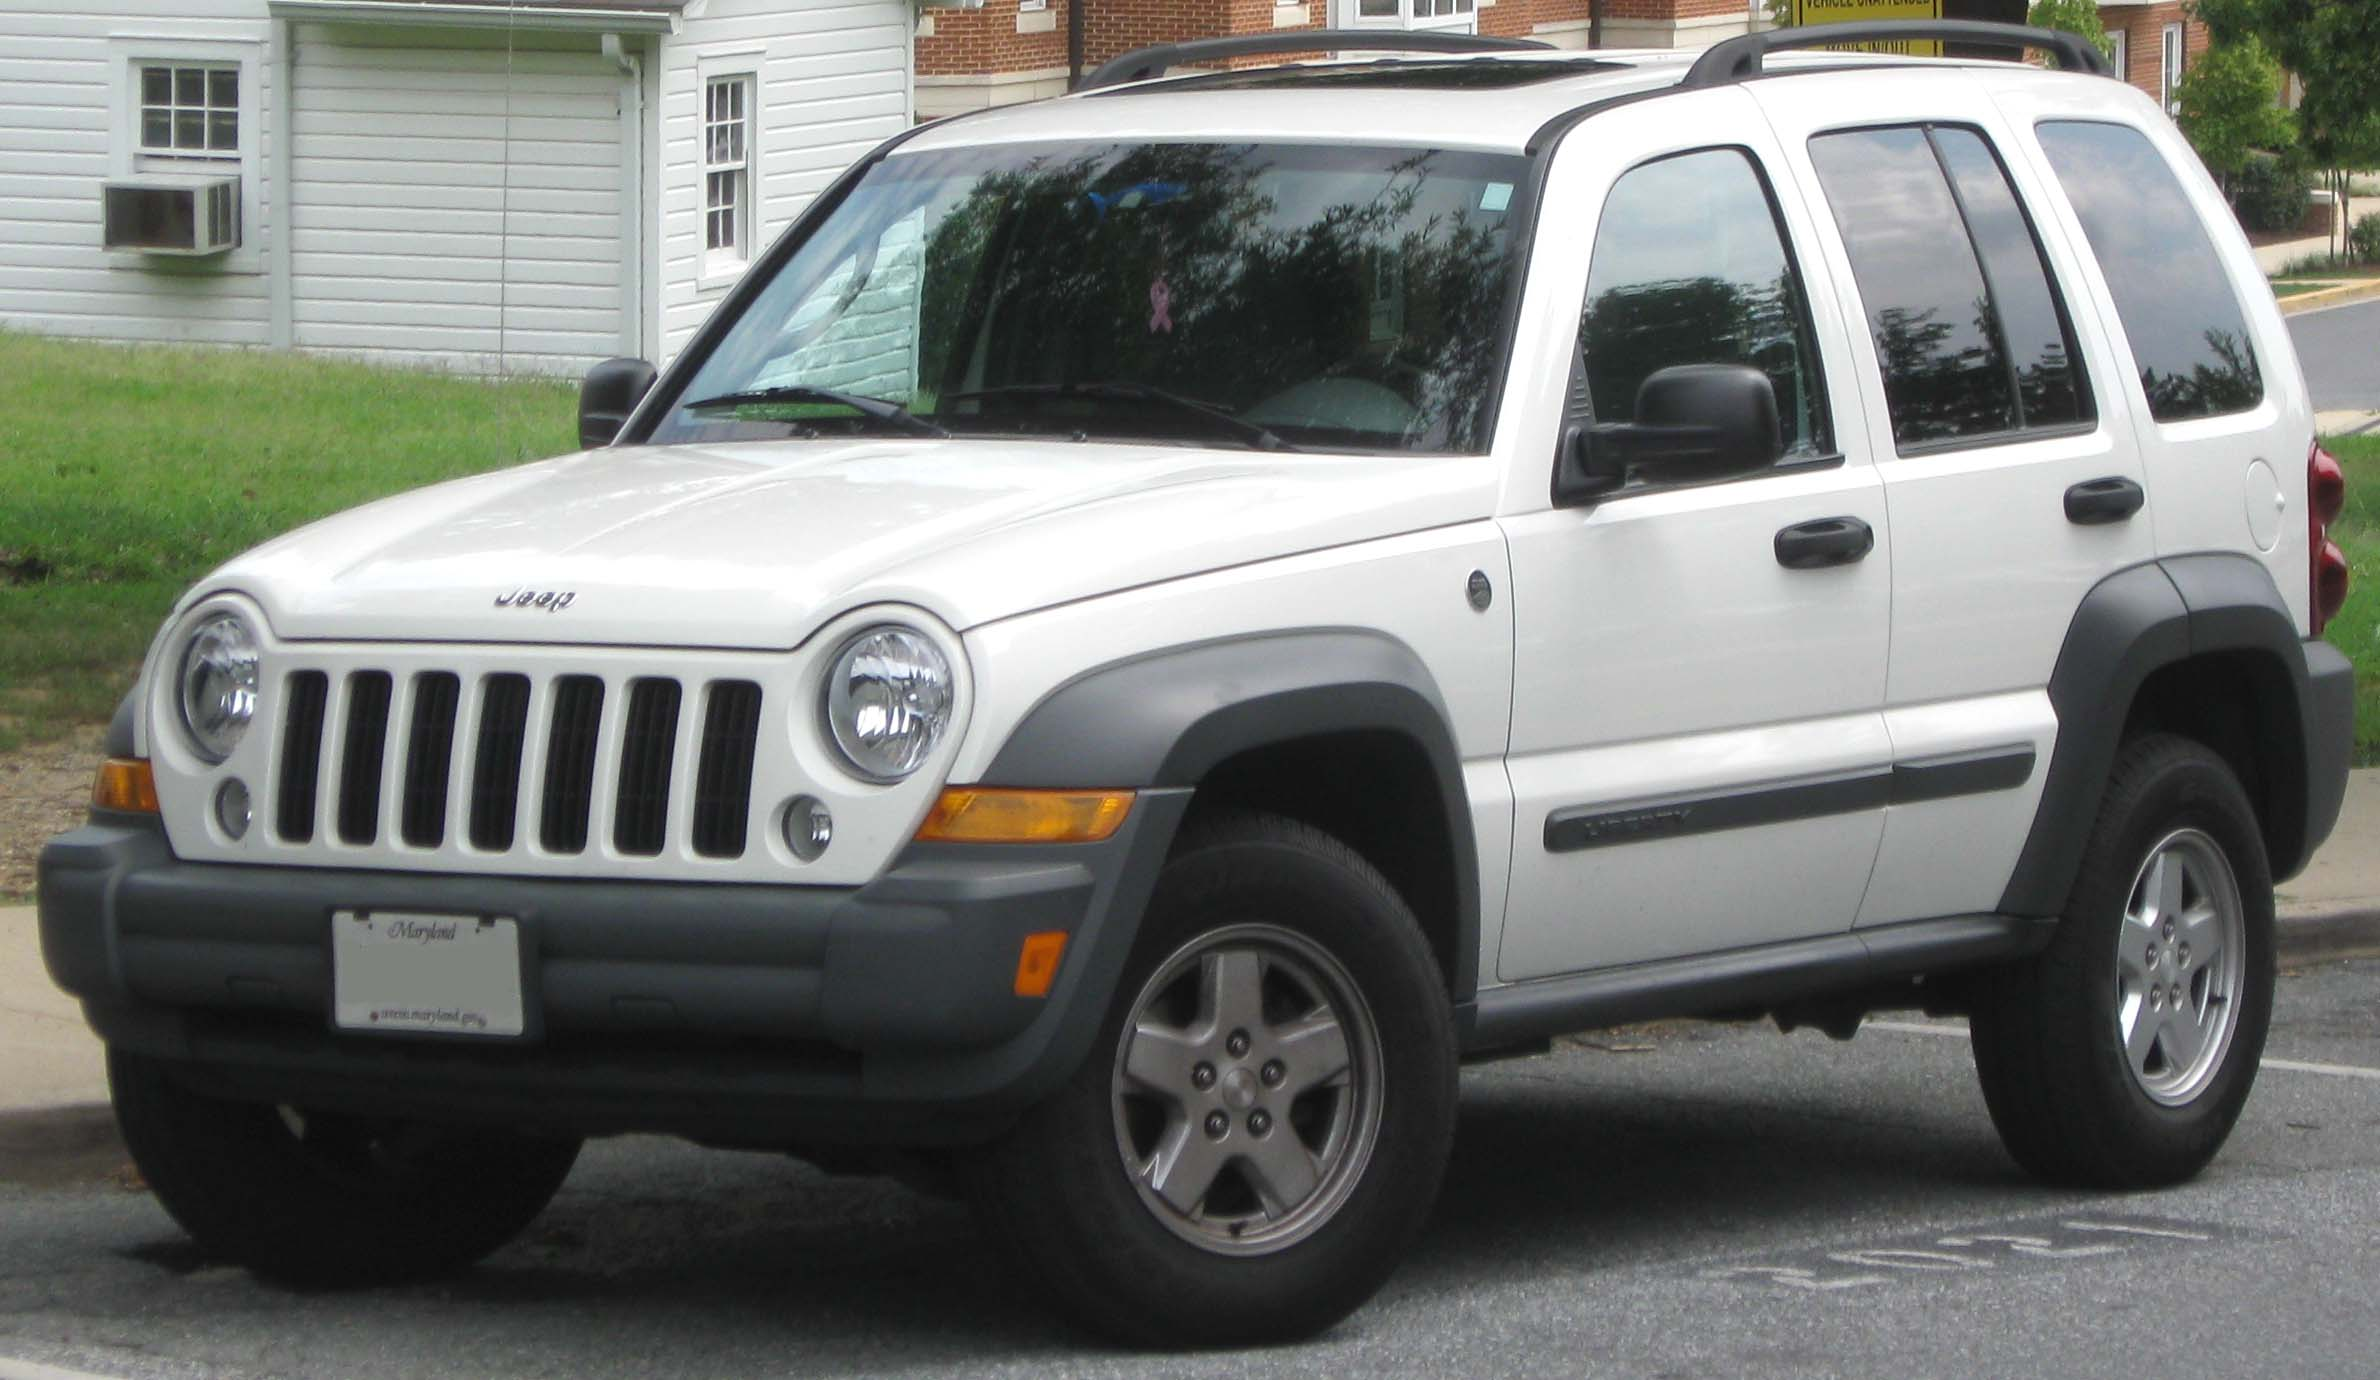 File:2005 2007 Jeep Liberty    08 16 2010